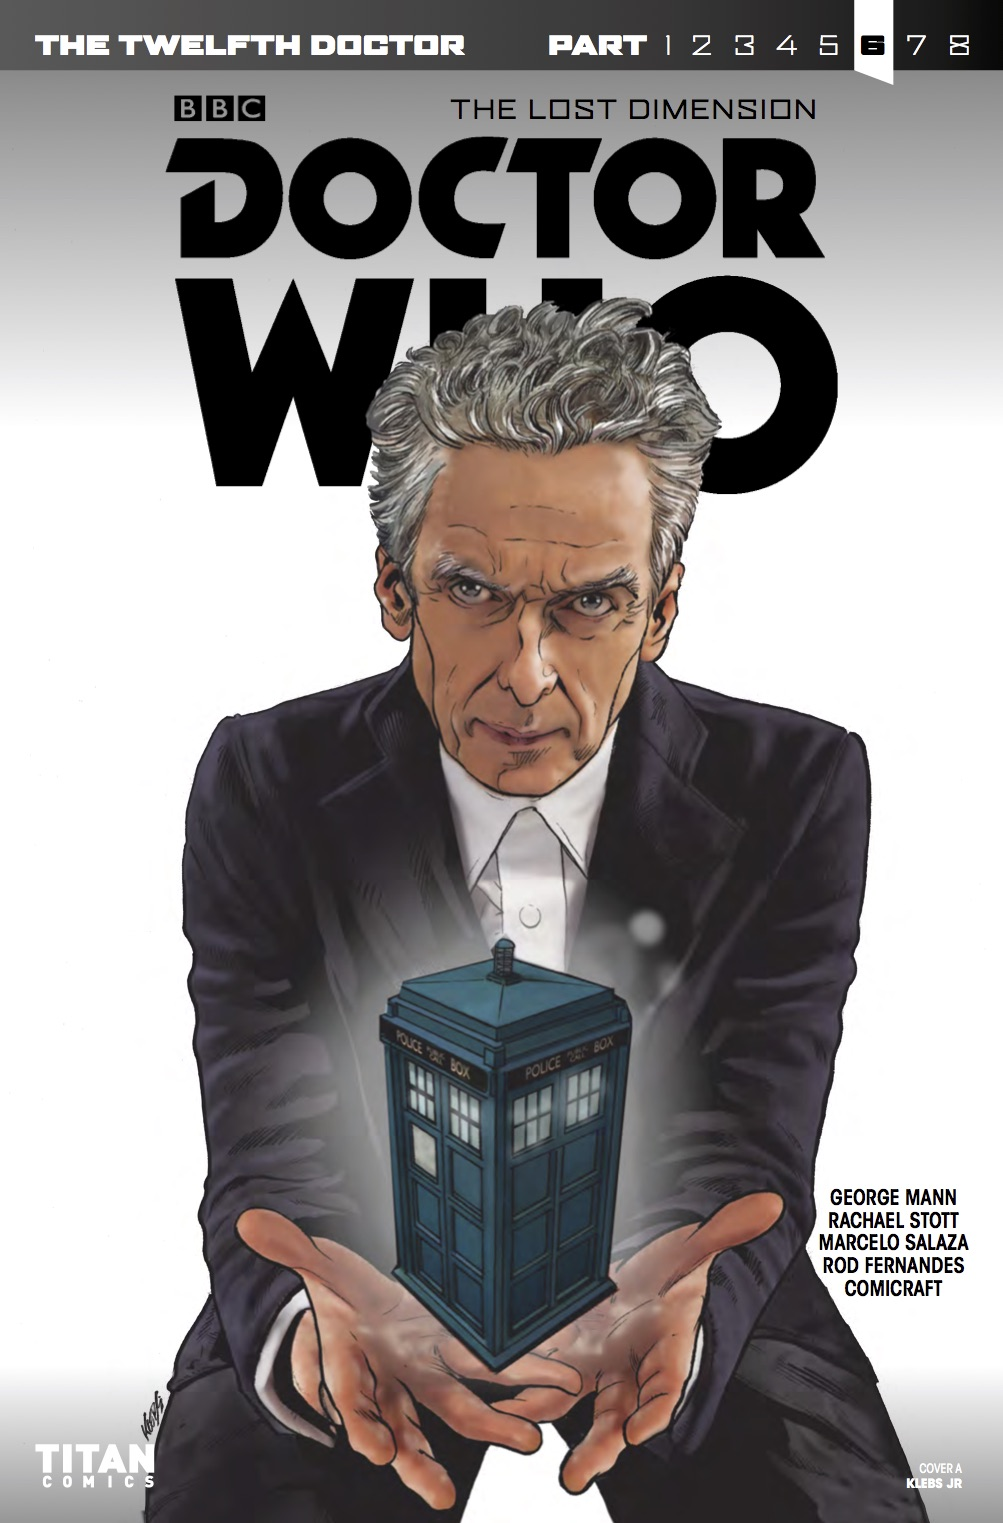 TWELFTH DOCTOR 3 8 - Cover A (Credit: Titan )